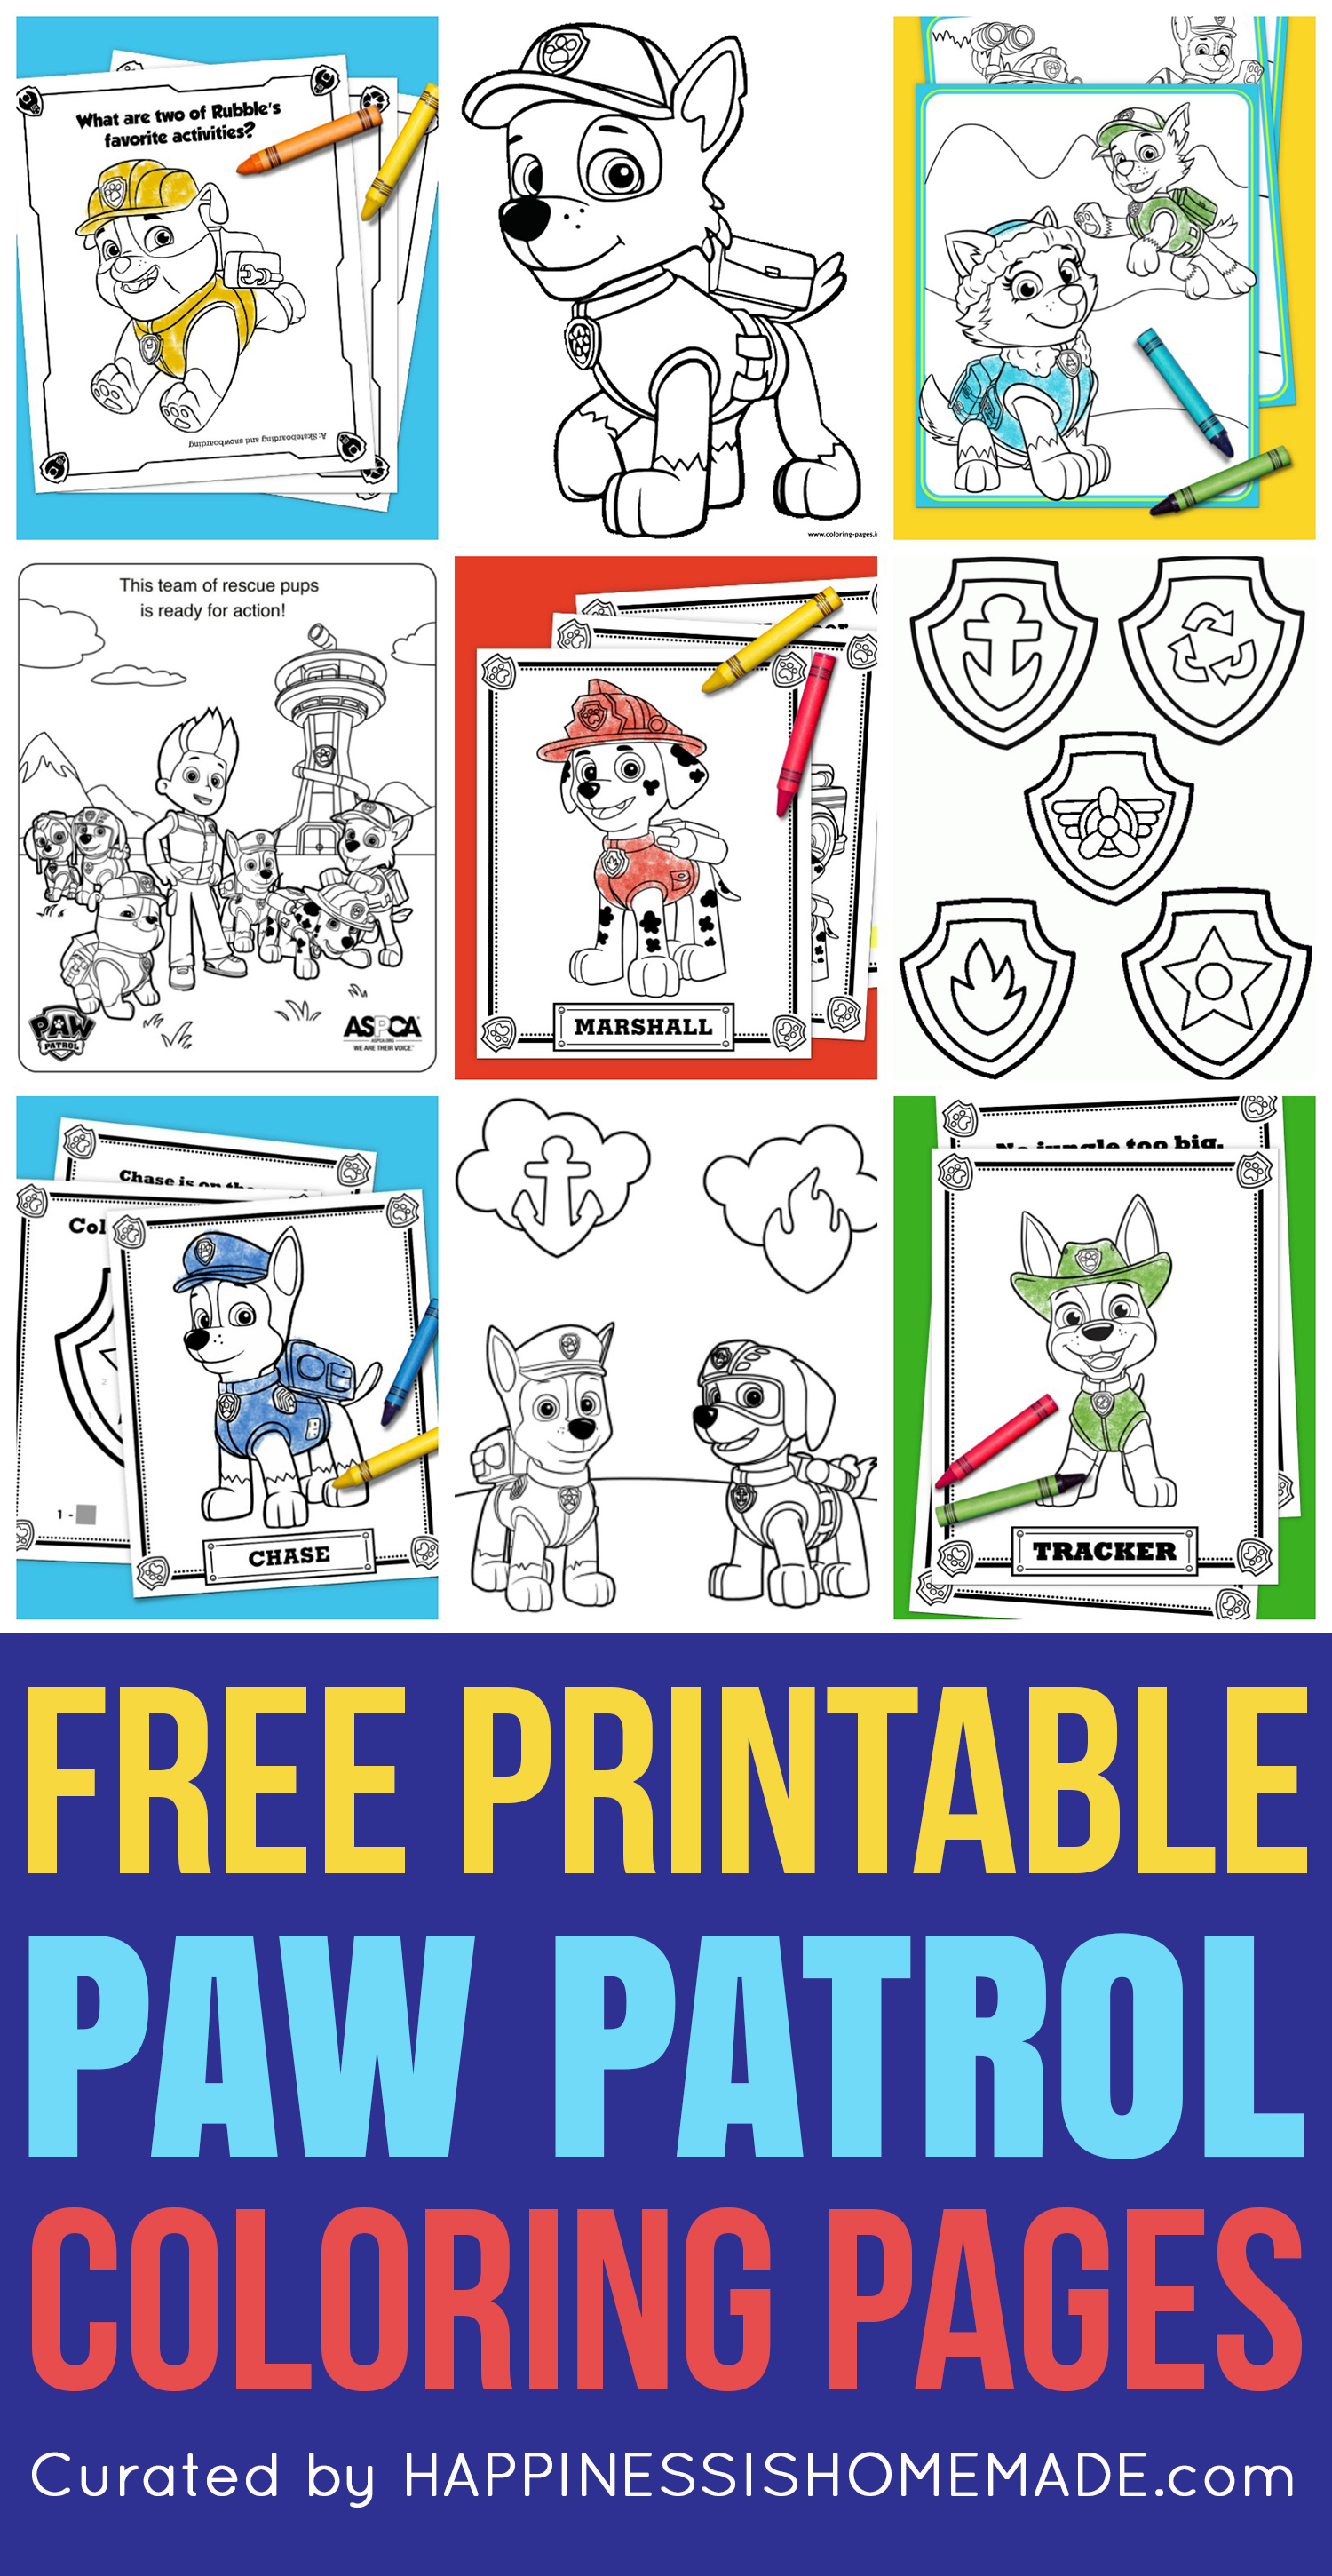 photo relating to Paw Patrol Printable referred to as No cost PAW Patrol Coloring Internet pages - Contentment is Home made